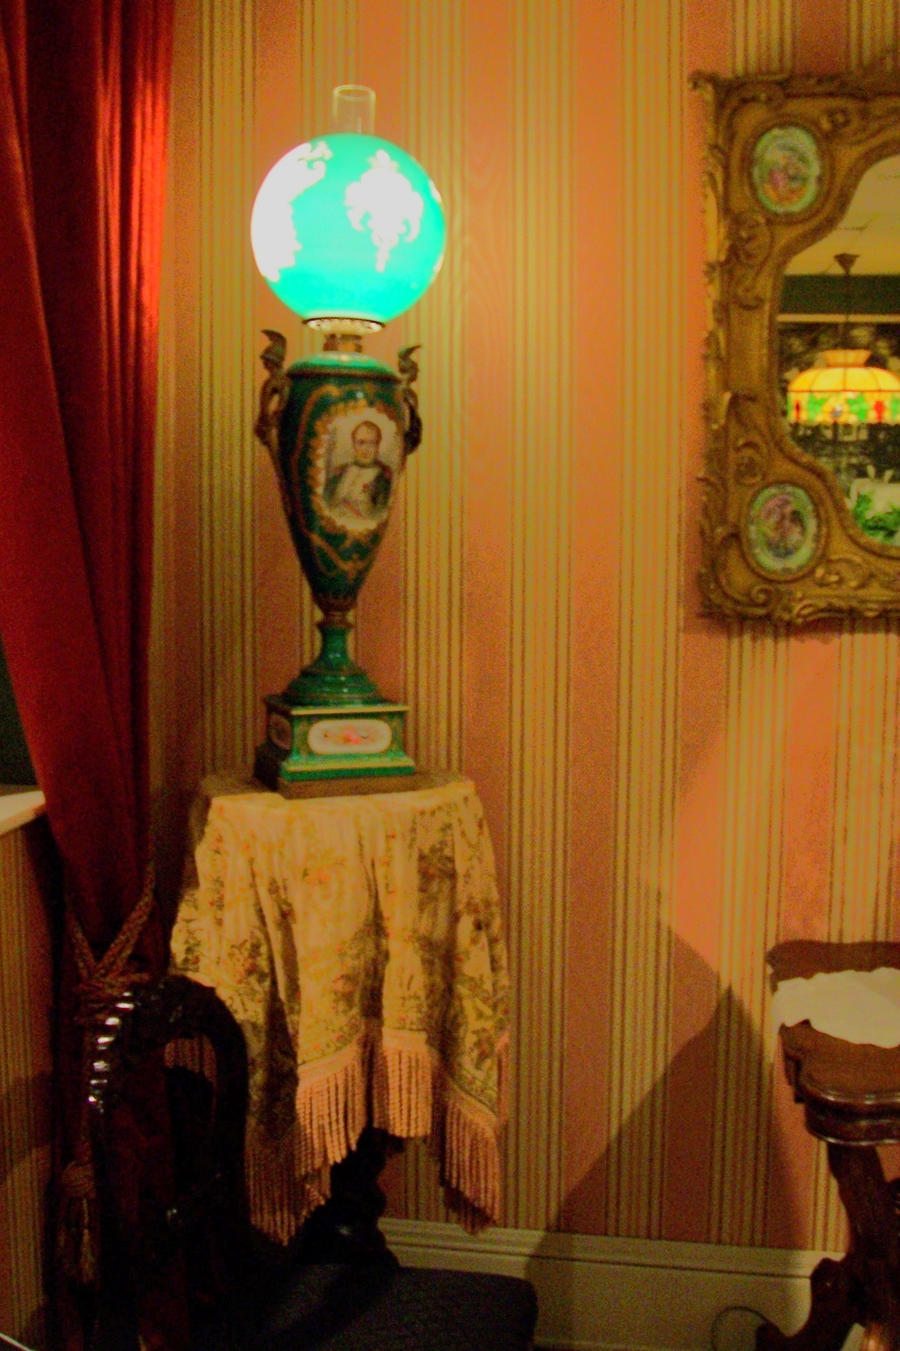 Victorian Lamp and Table by paintresseye